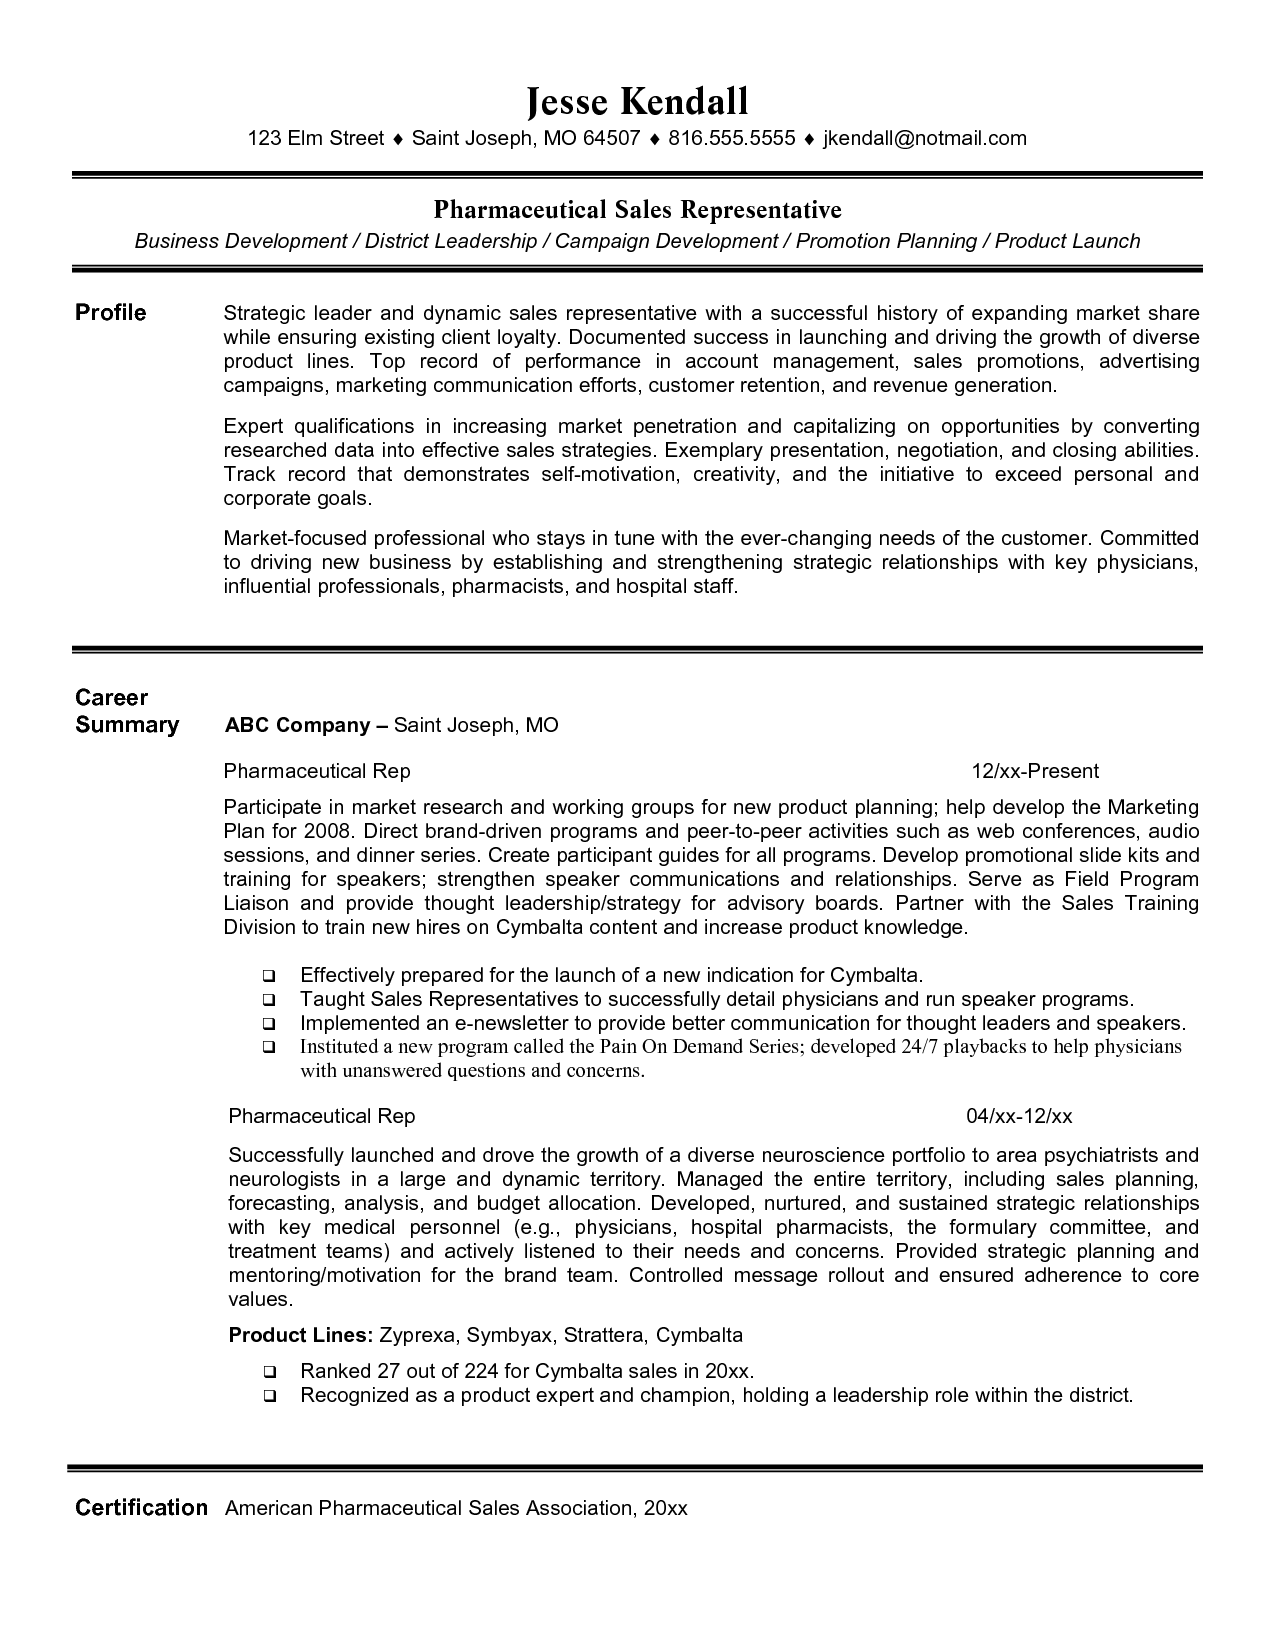 Pharmaceutical Sales Rep Resume Sample entry level pharmaceutical sales  resume